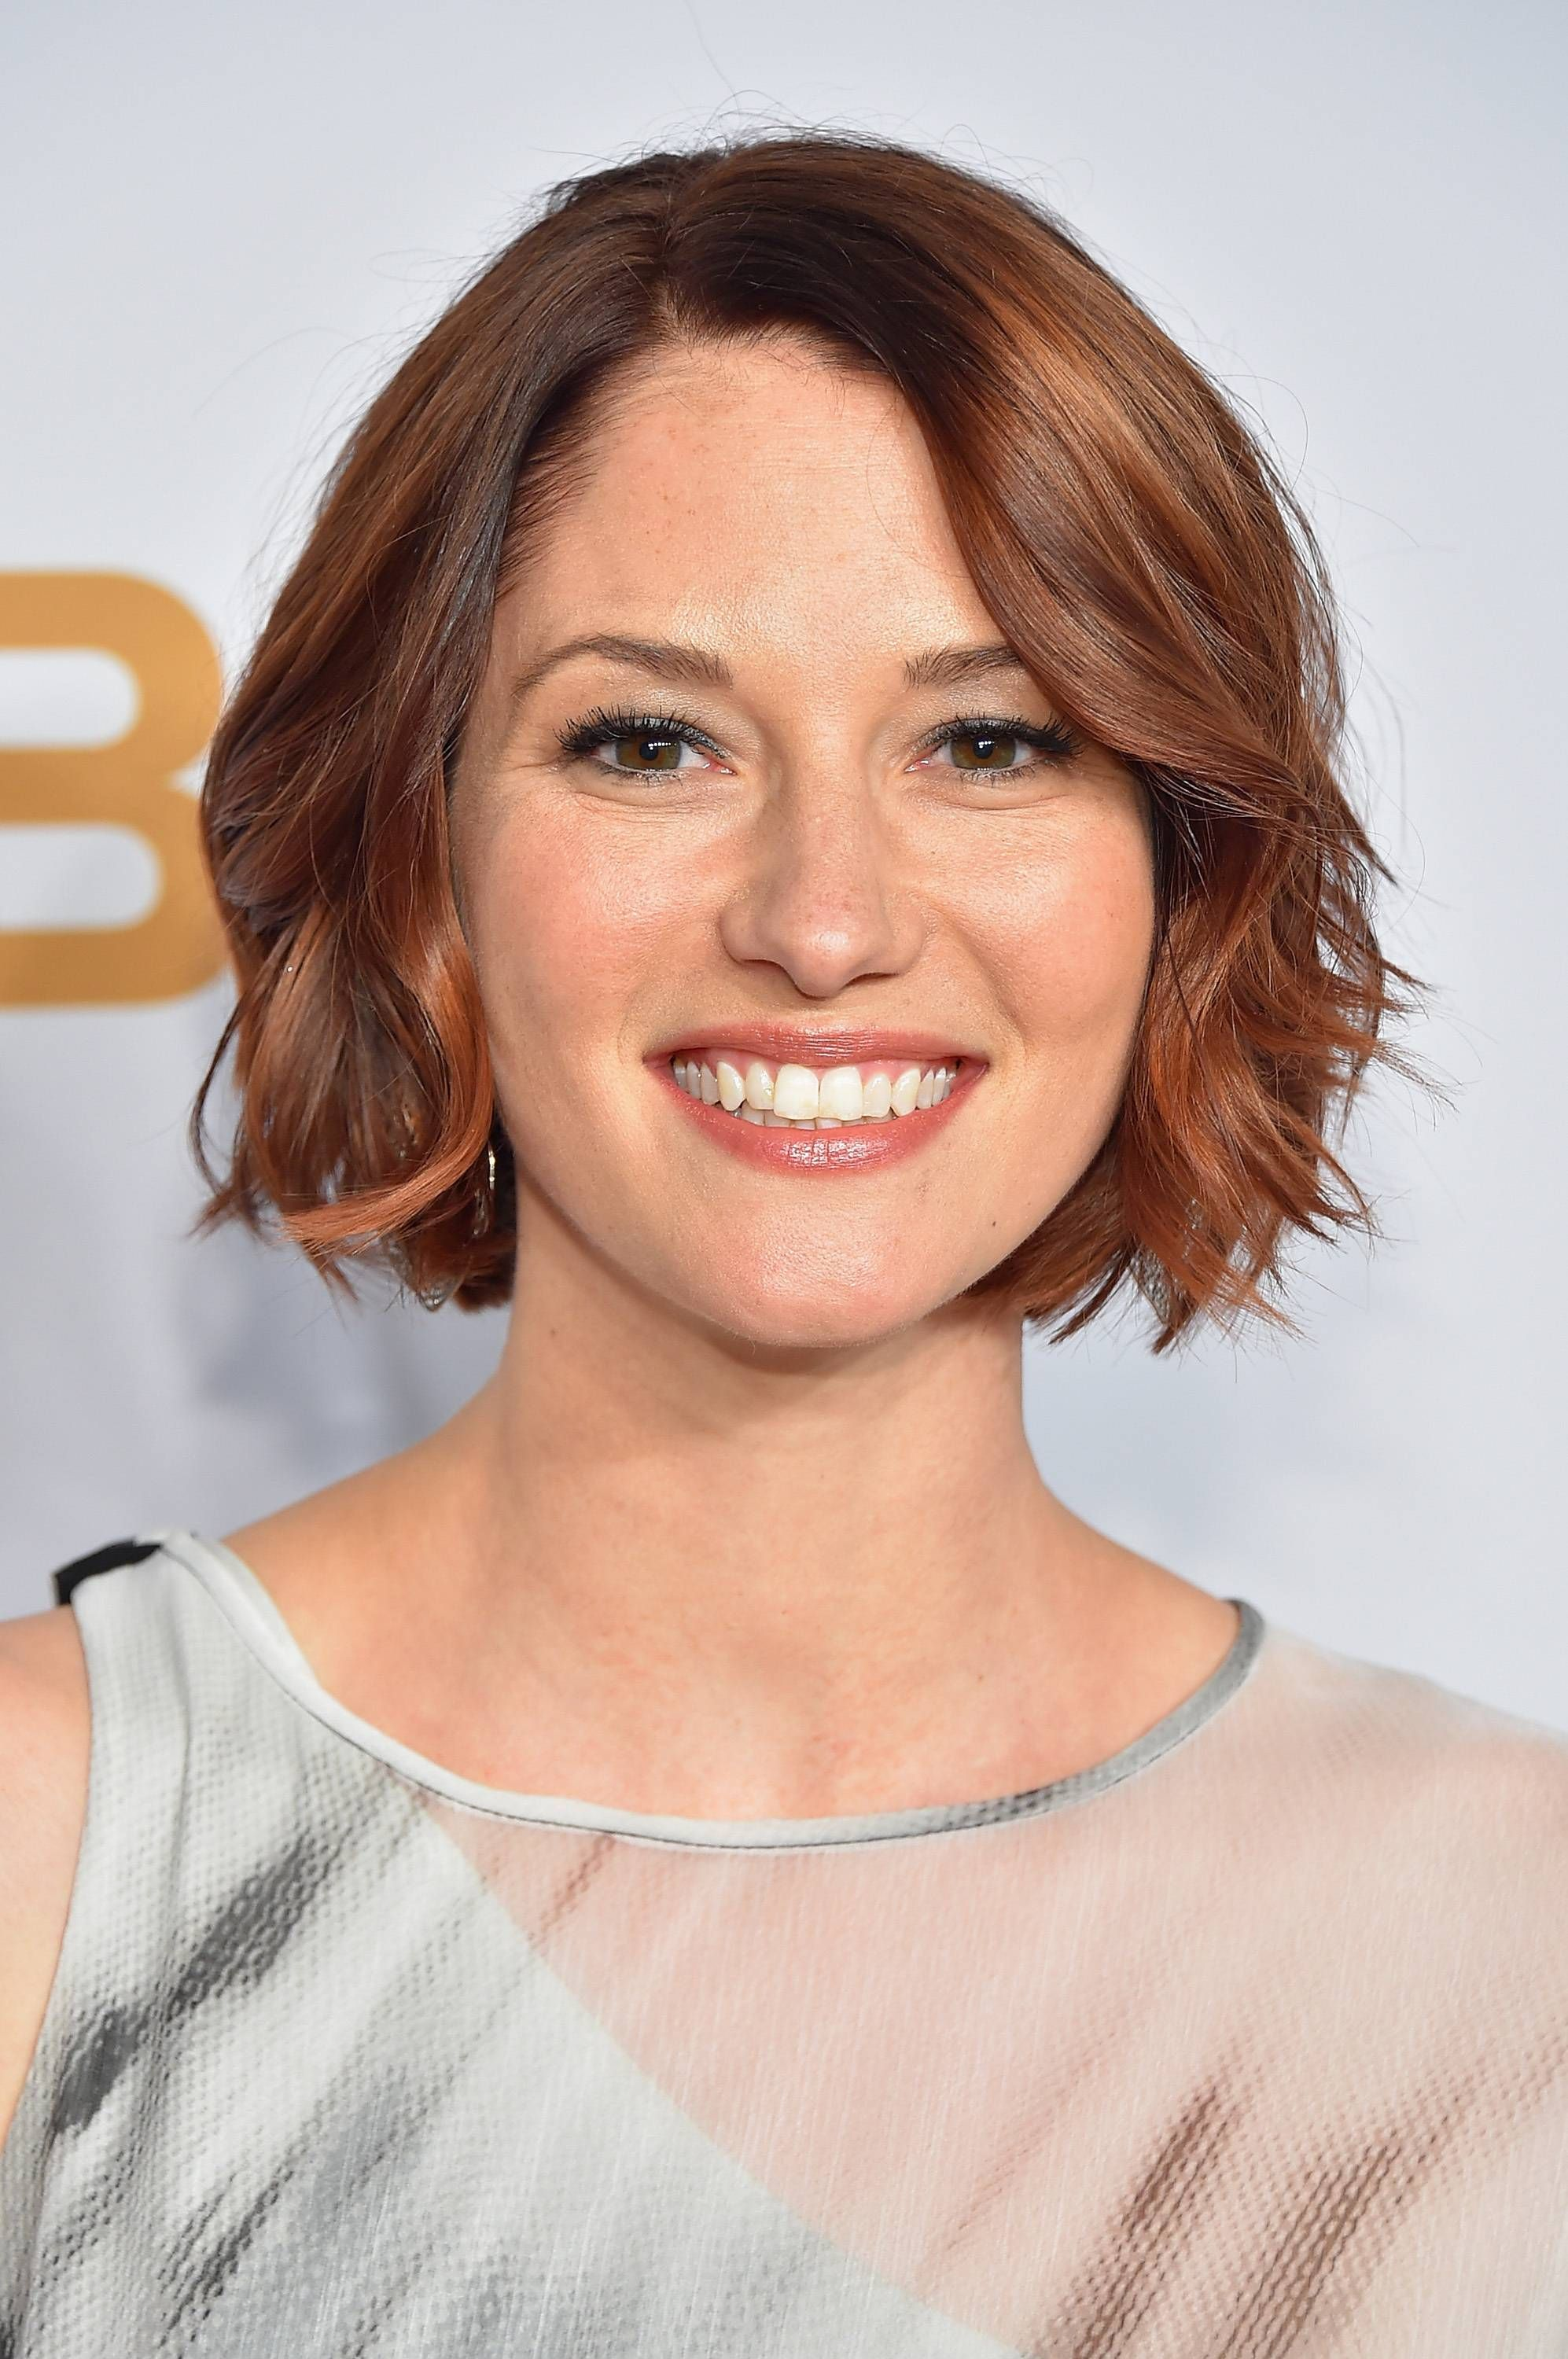 Sideboobs Hacked Chyler Leigh naked photo 2017